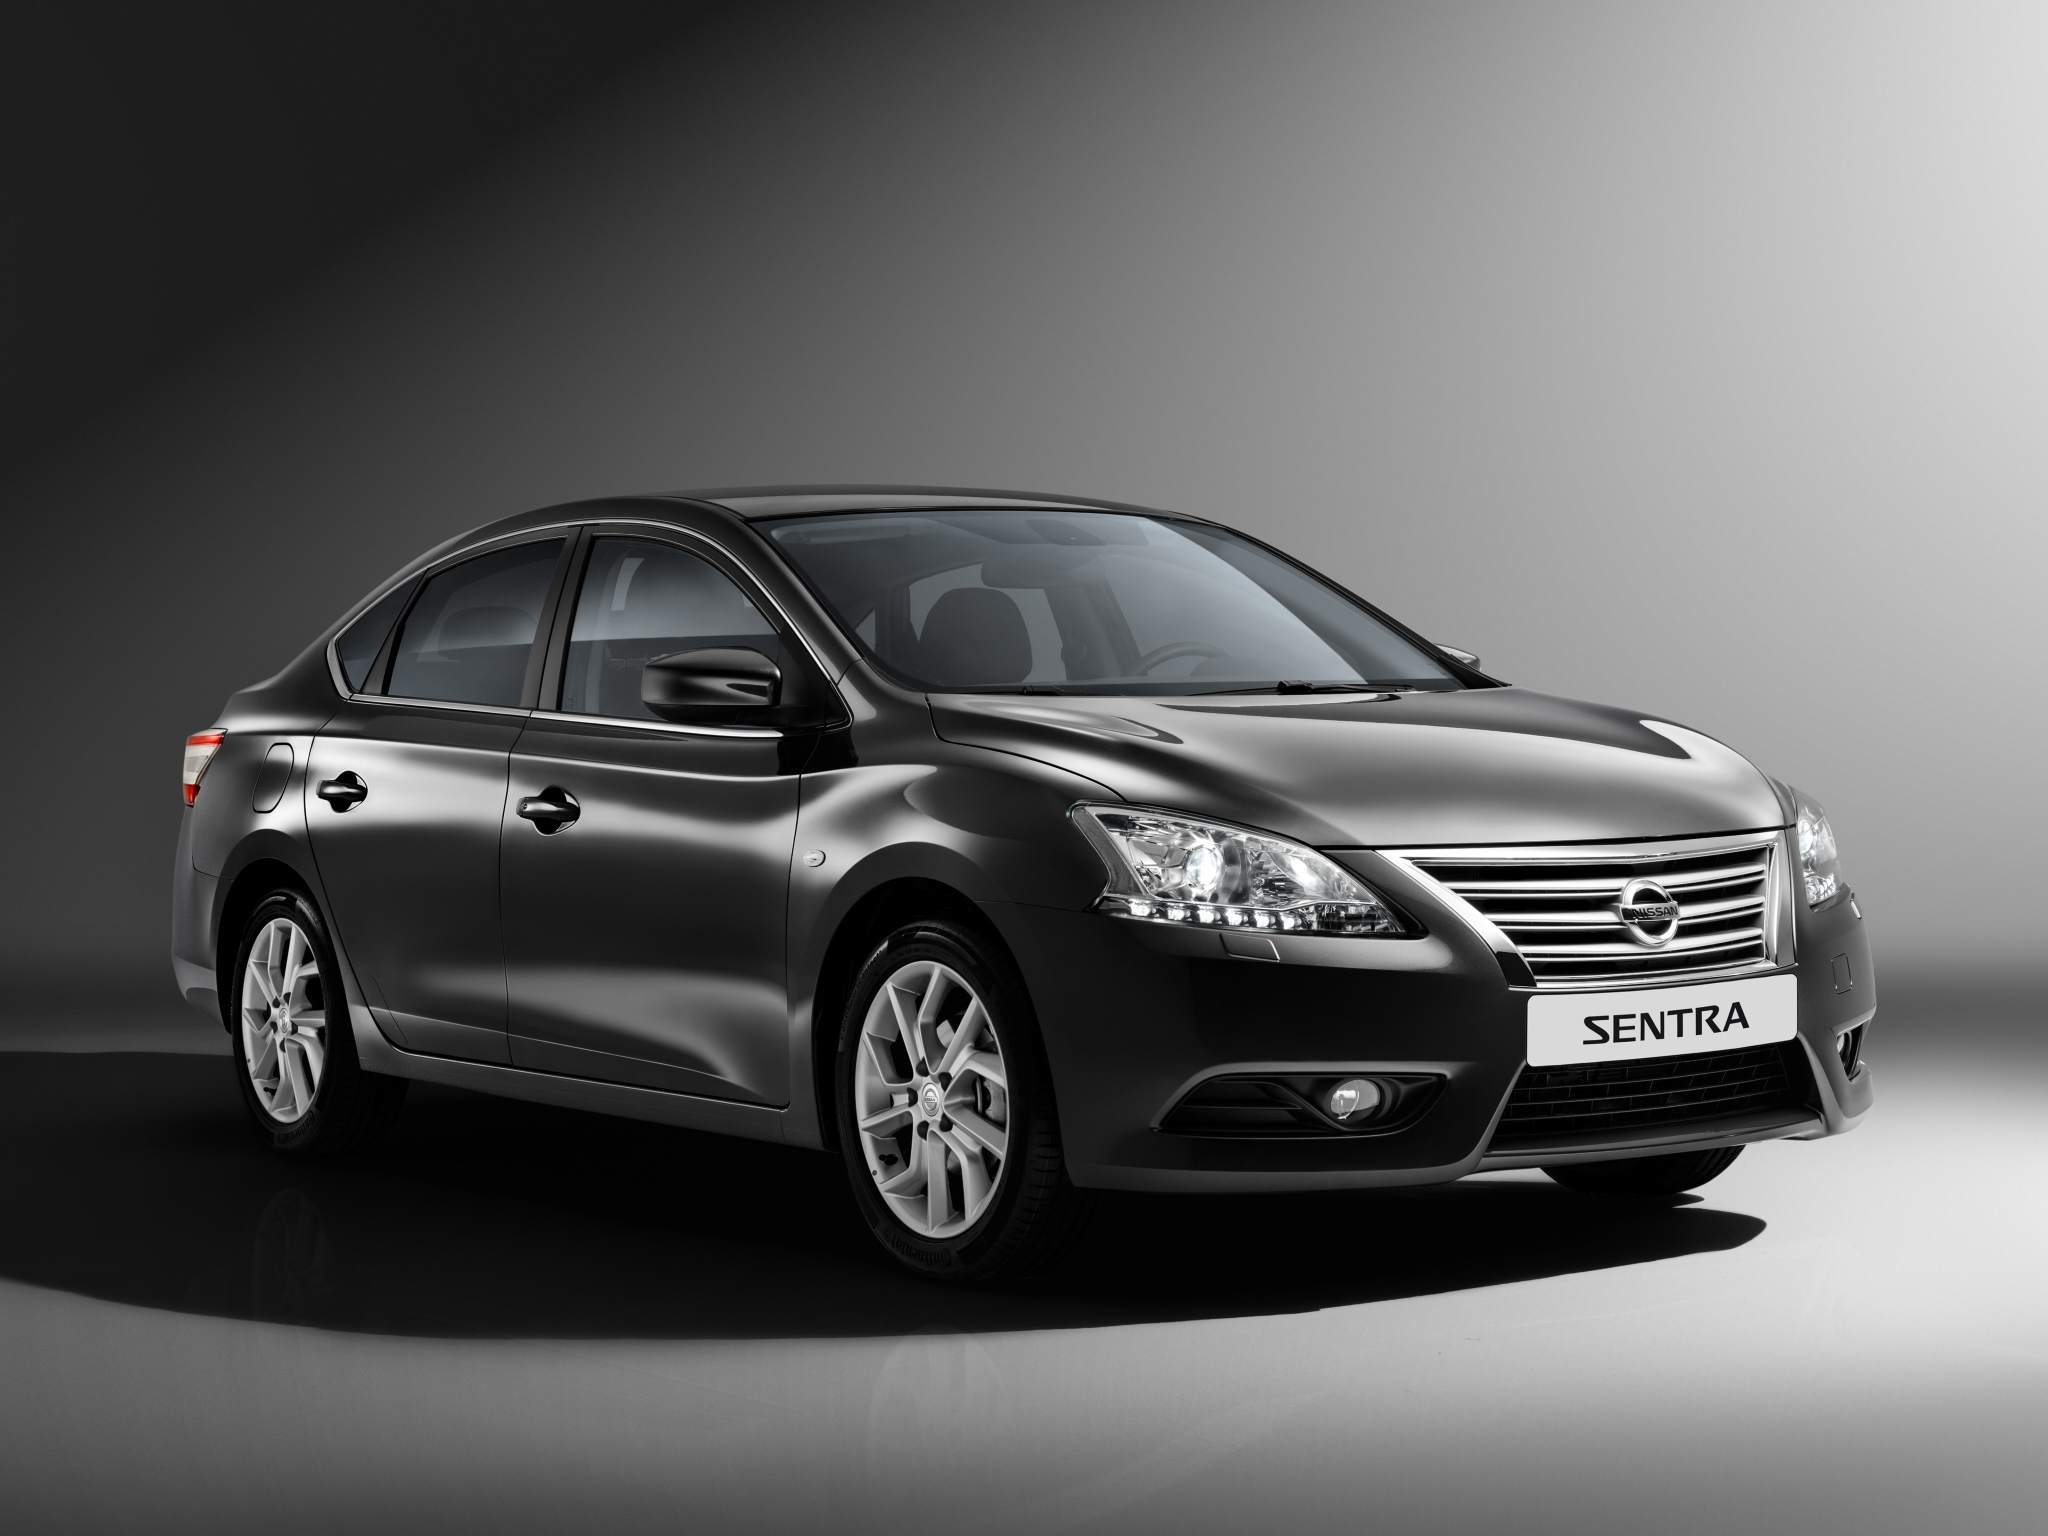 russian spec nissan sentra sedan revealed in moscow autoevolution. Black Bedroom Furniture Sets. Home Design Ideas